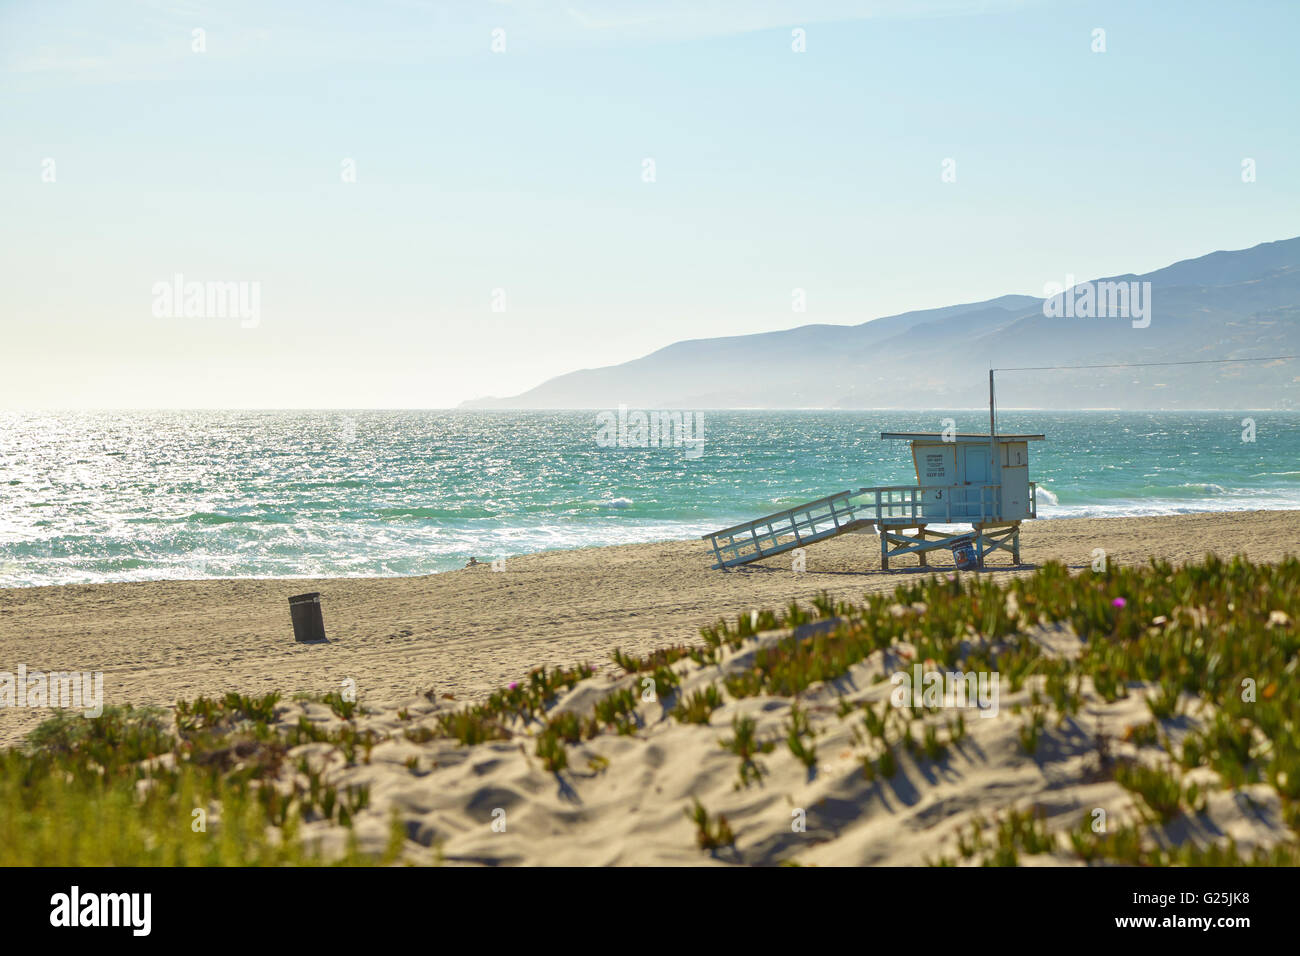 Lifeguard hut on the Malibu beach. Stock Photo